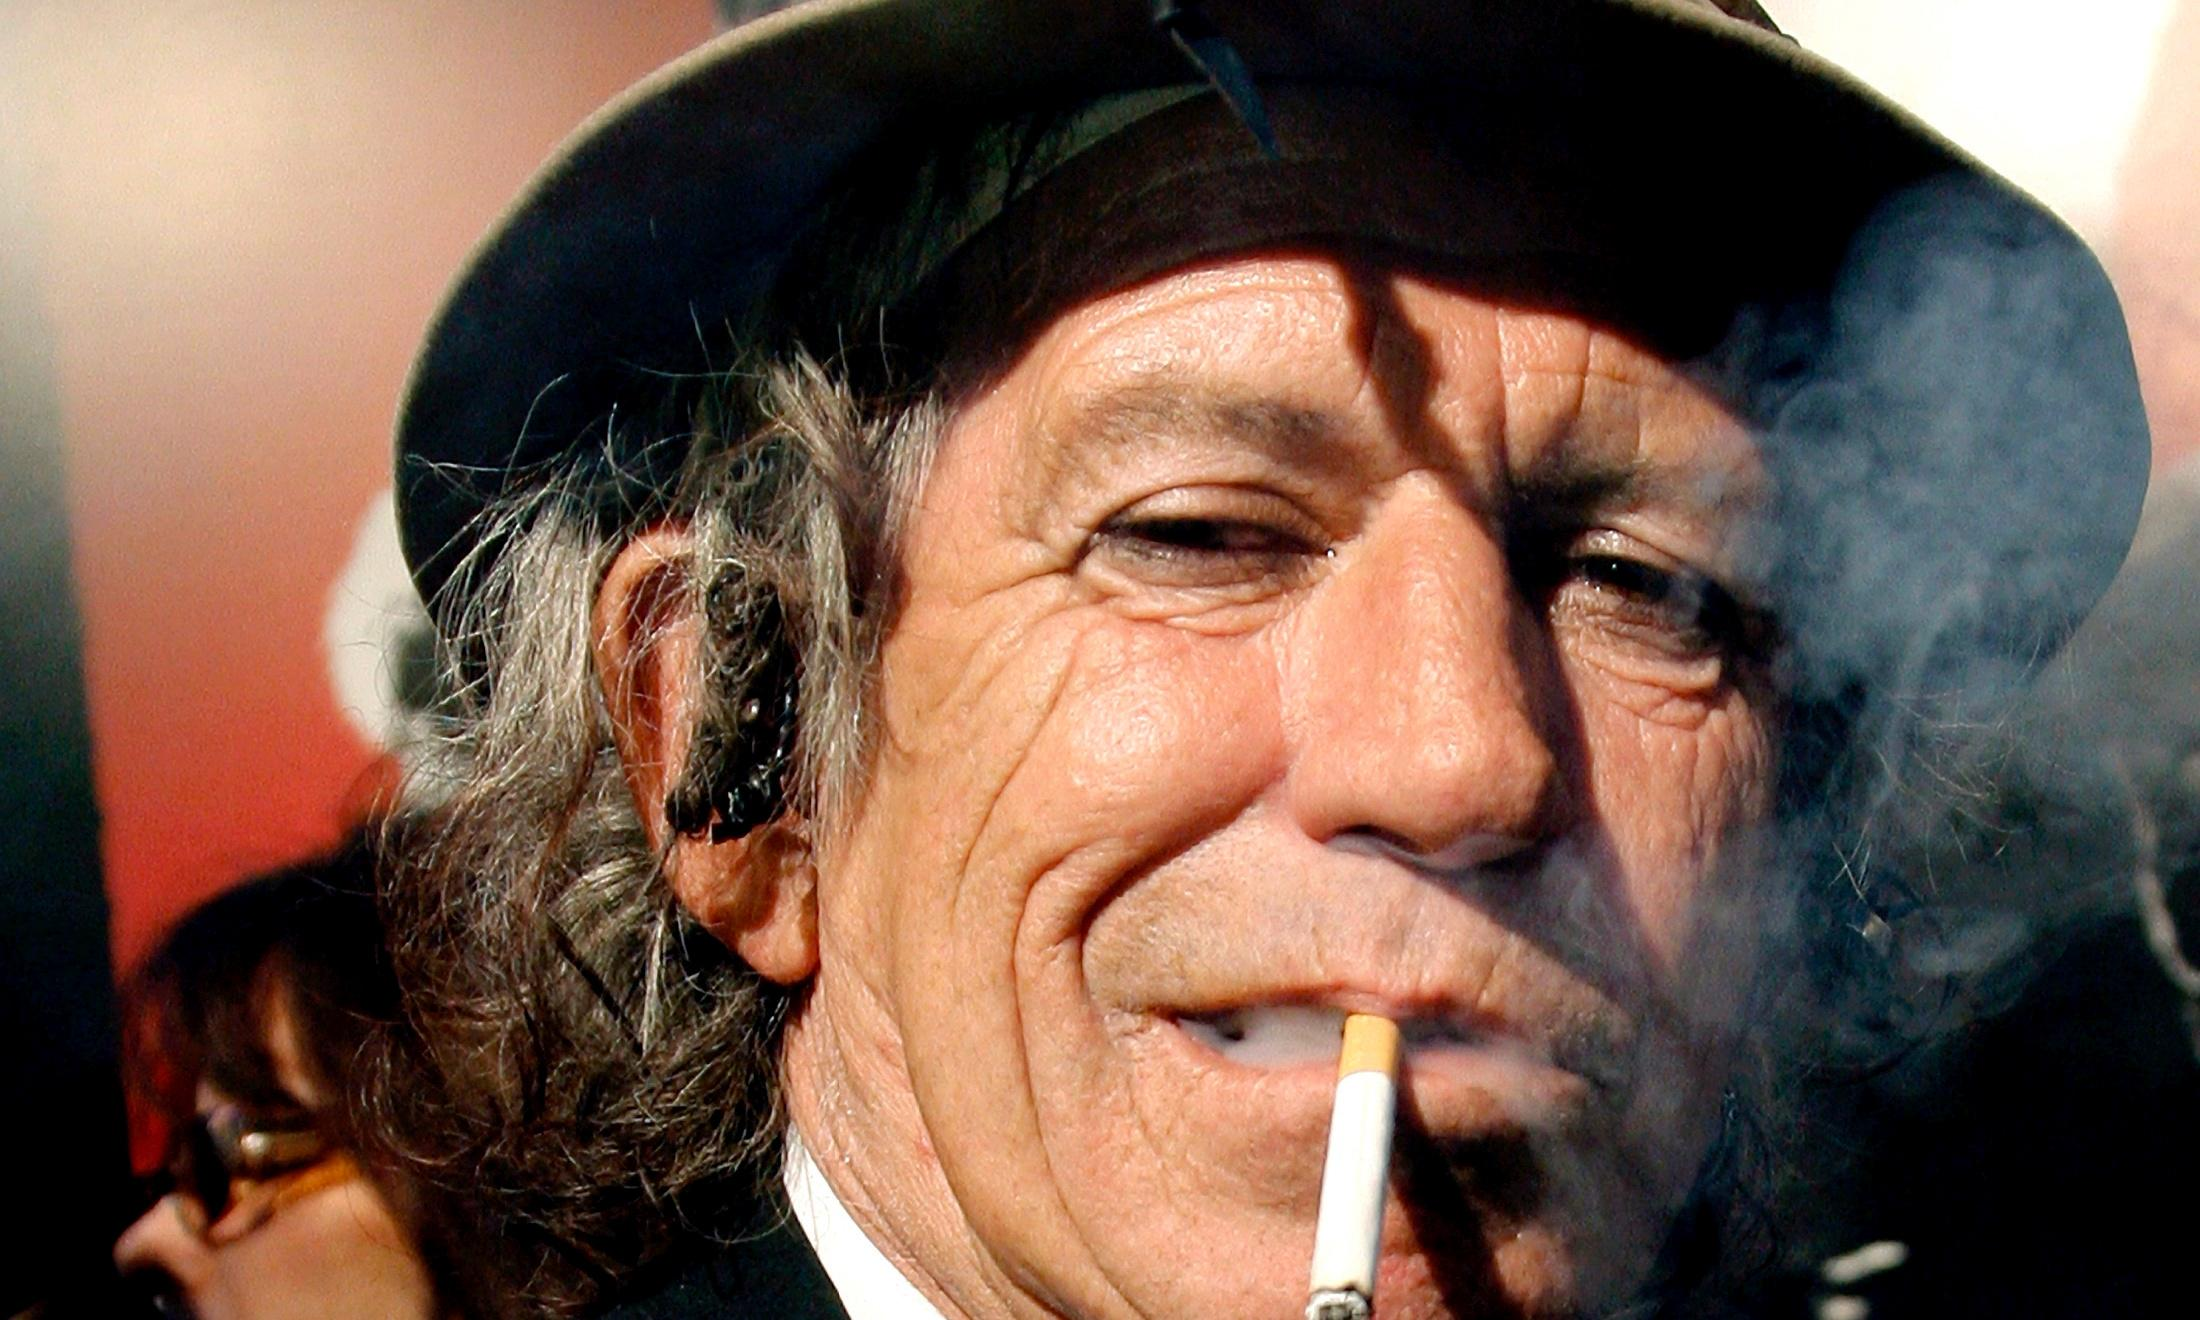 Keith Richards gives up drinking (almost), saying 'I got fed up with it'